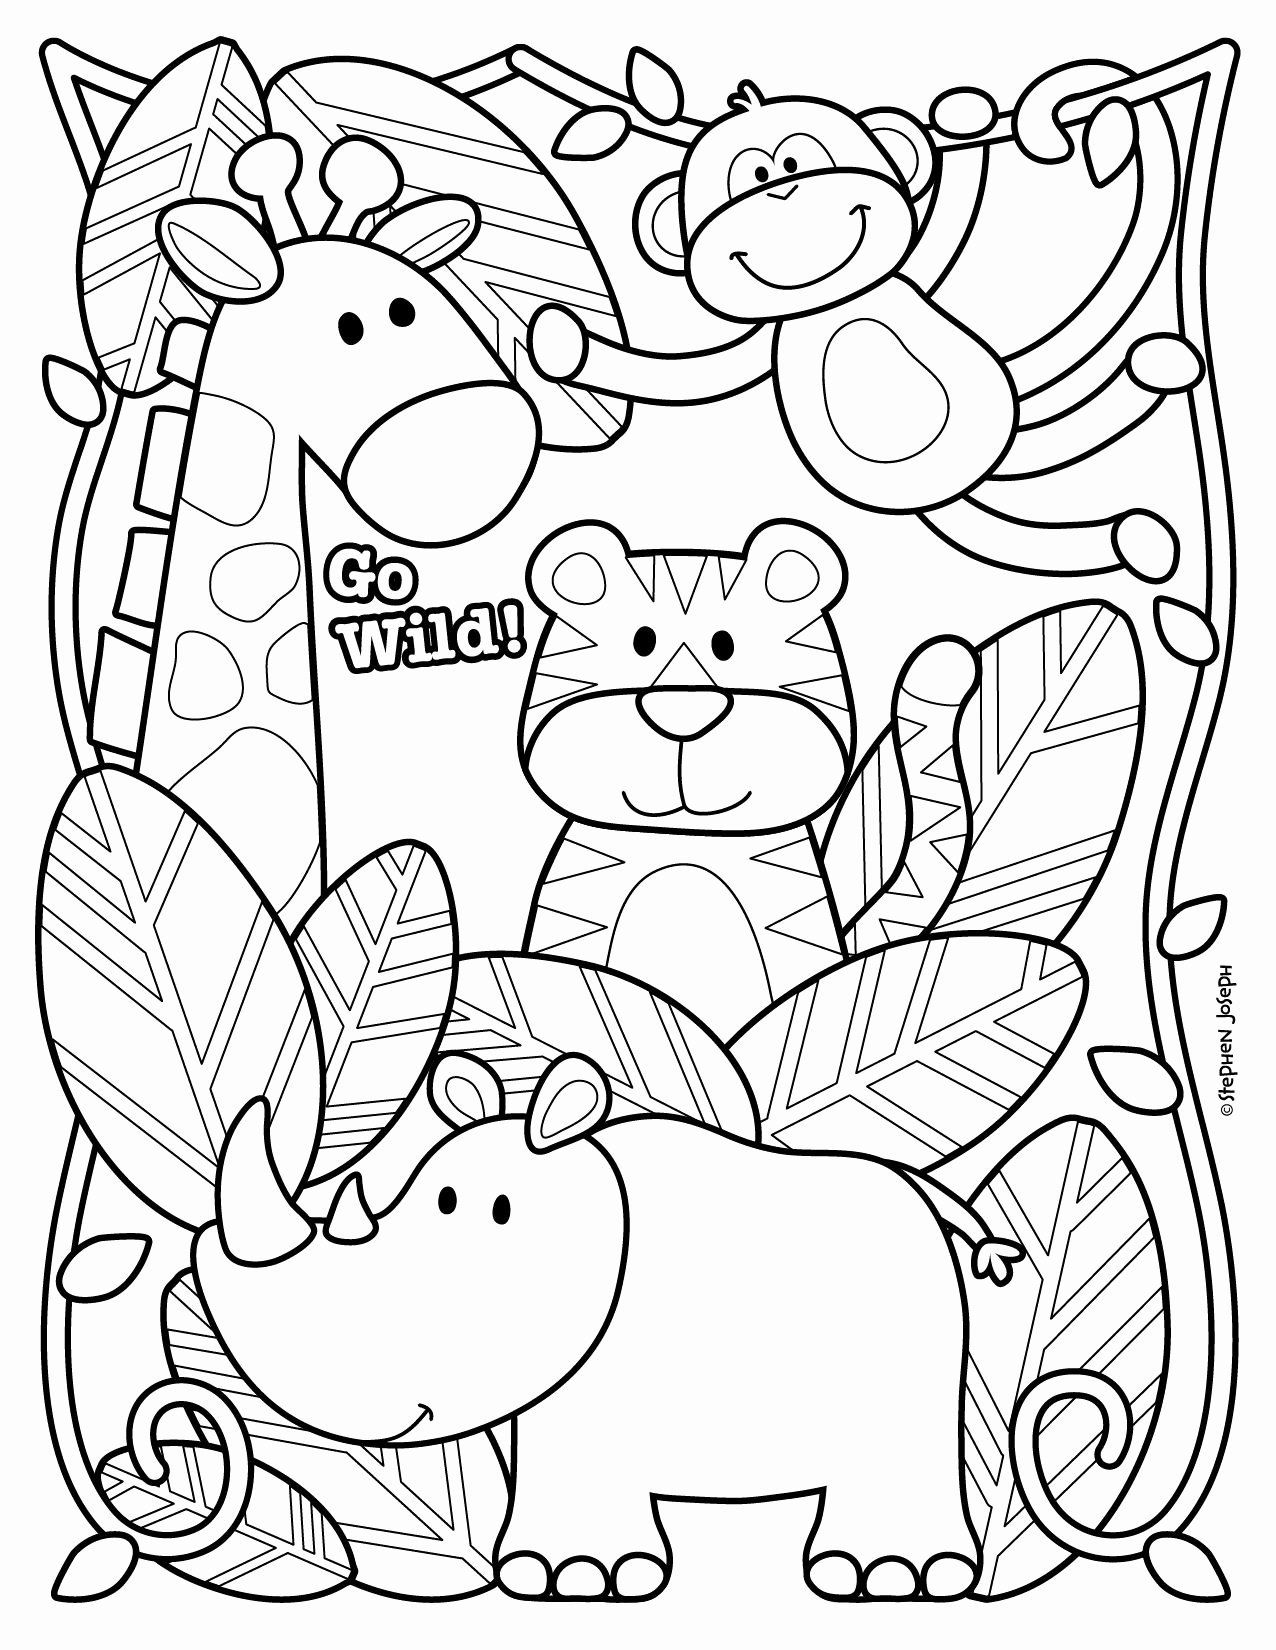 zoo animals coloring pictures zoo coloring pages free download on clipartmag coloring pictures zoo animals